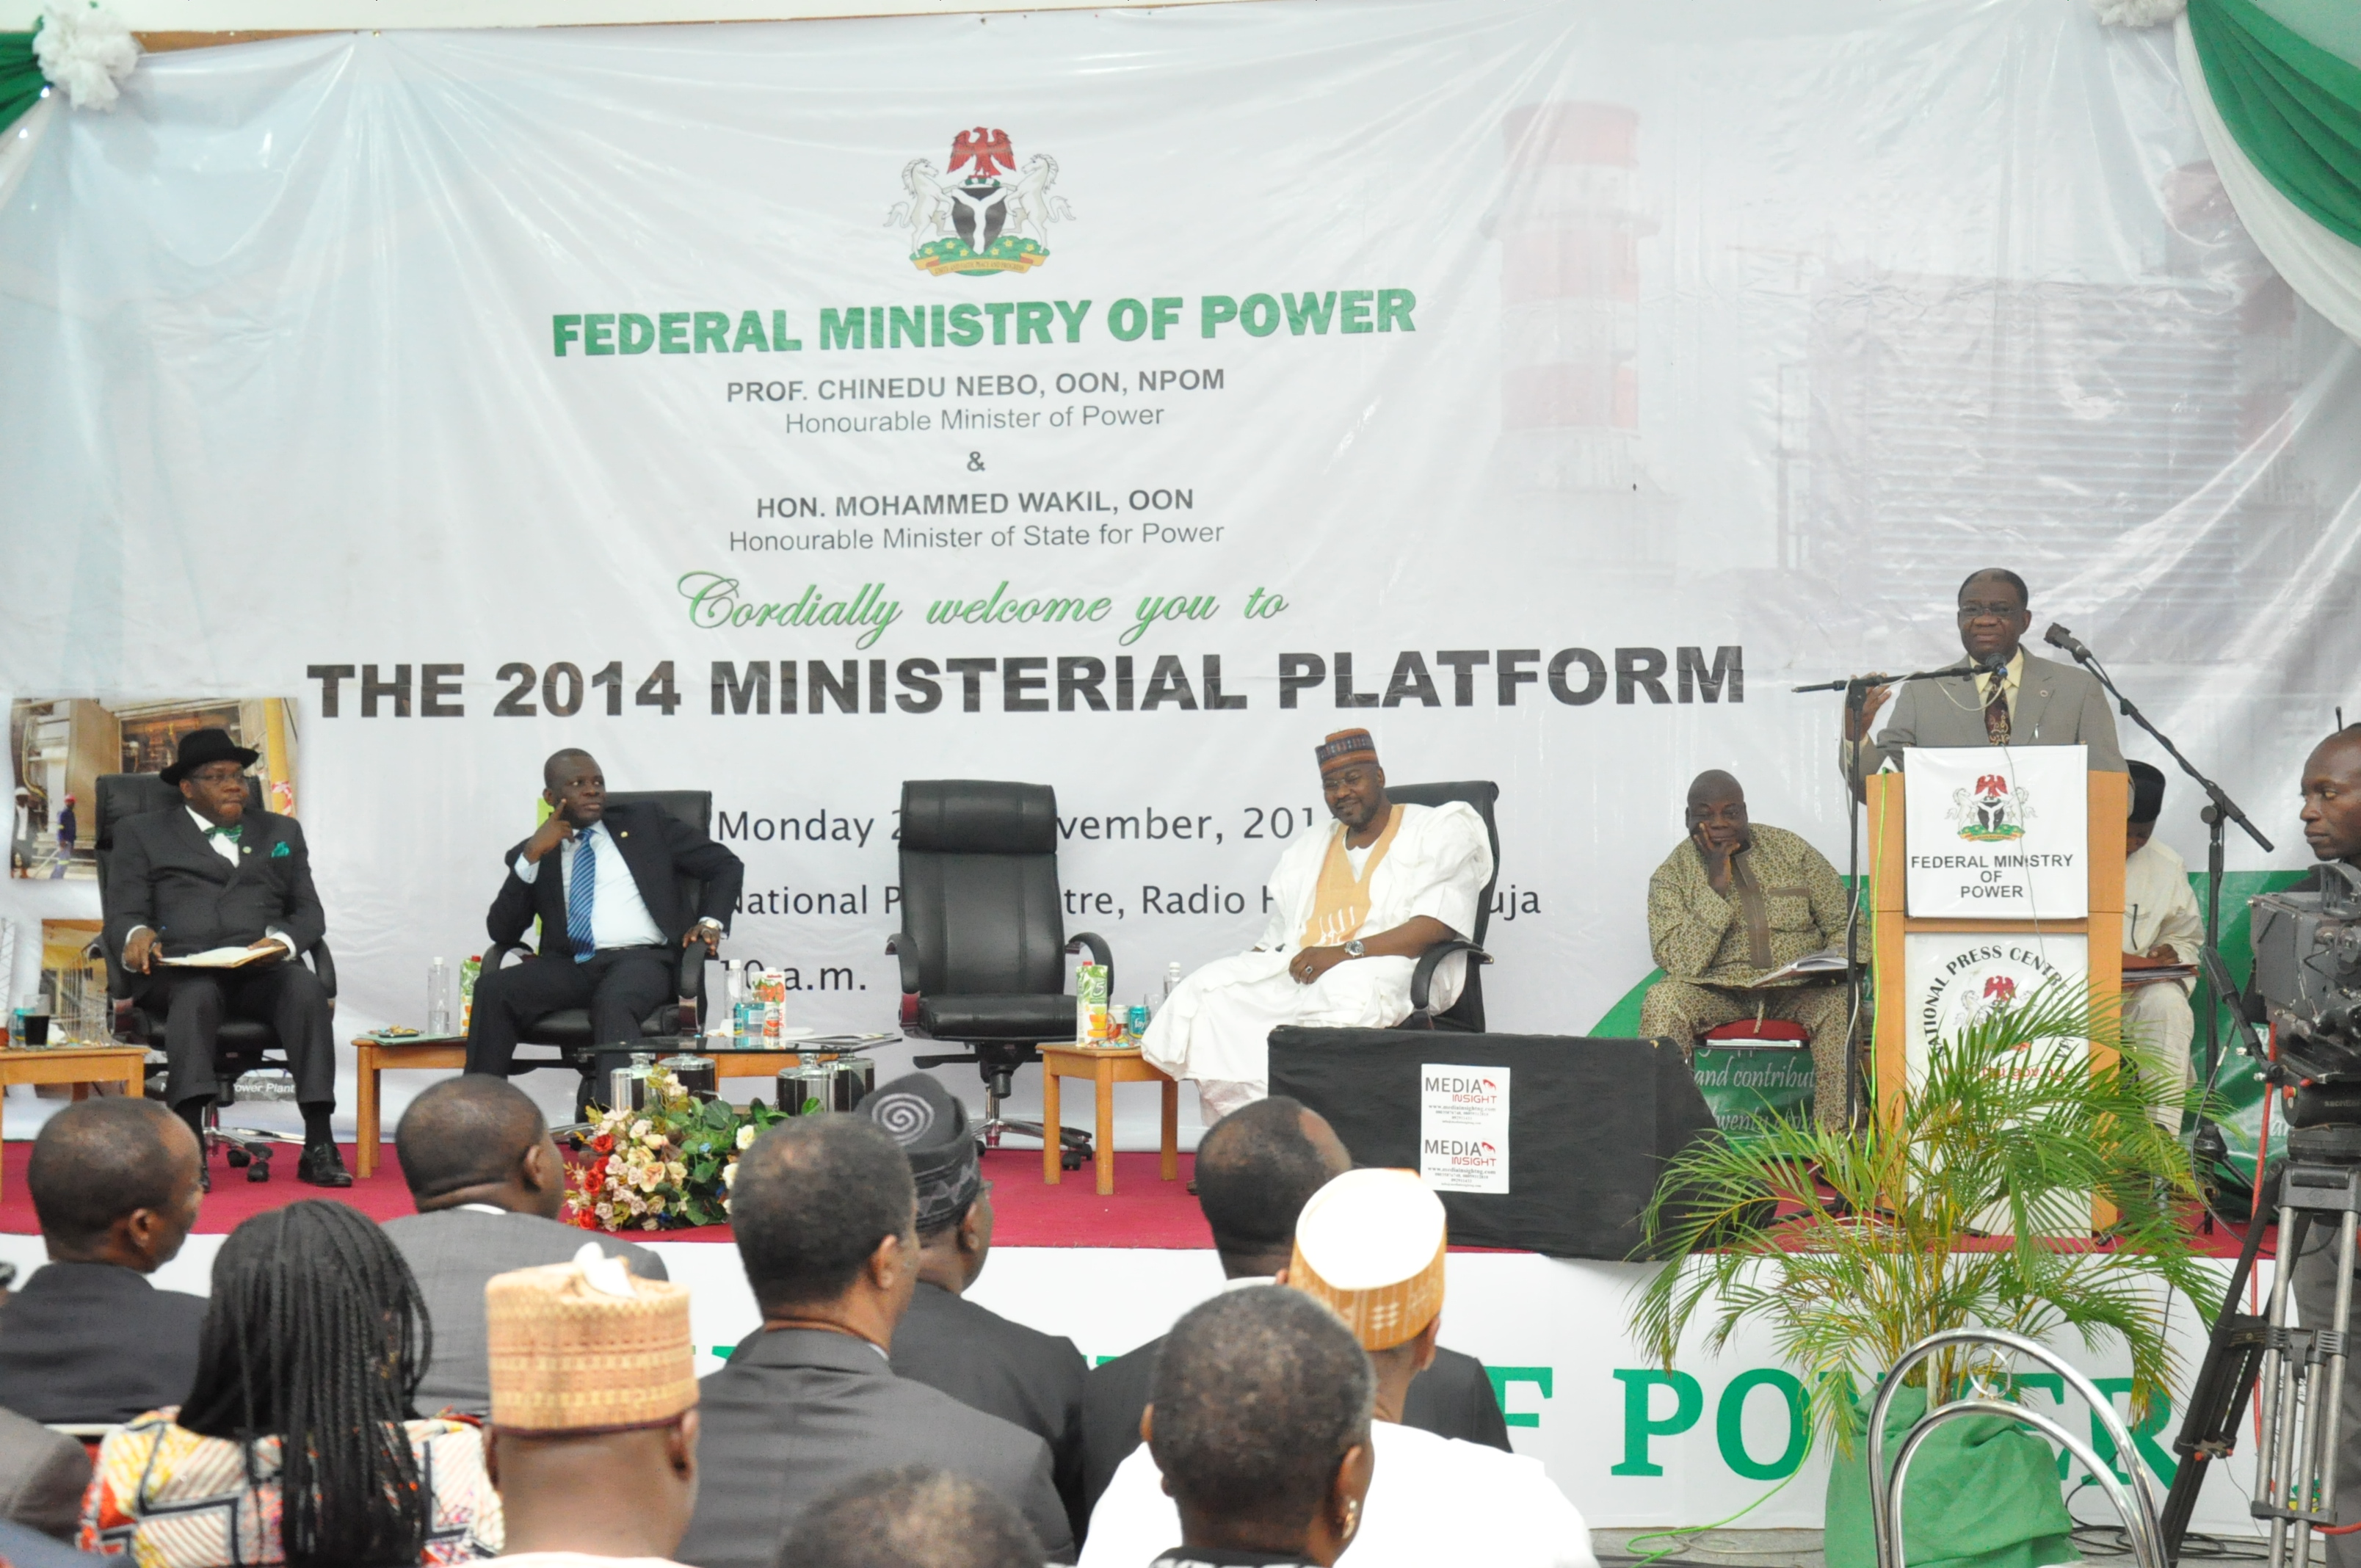 The Minister of Power's 2014 Ministerial Platform